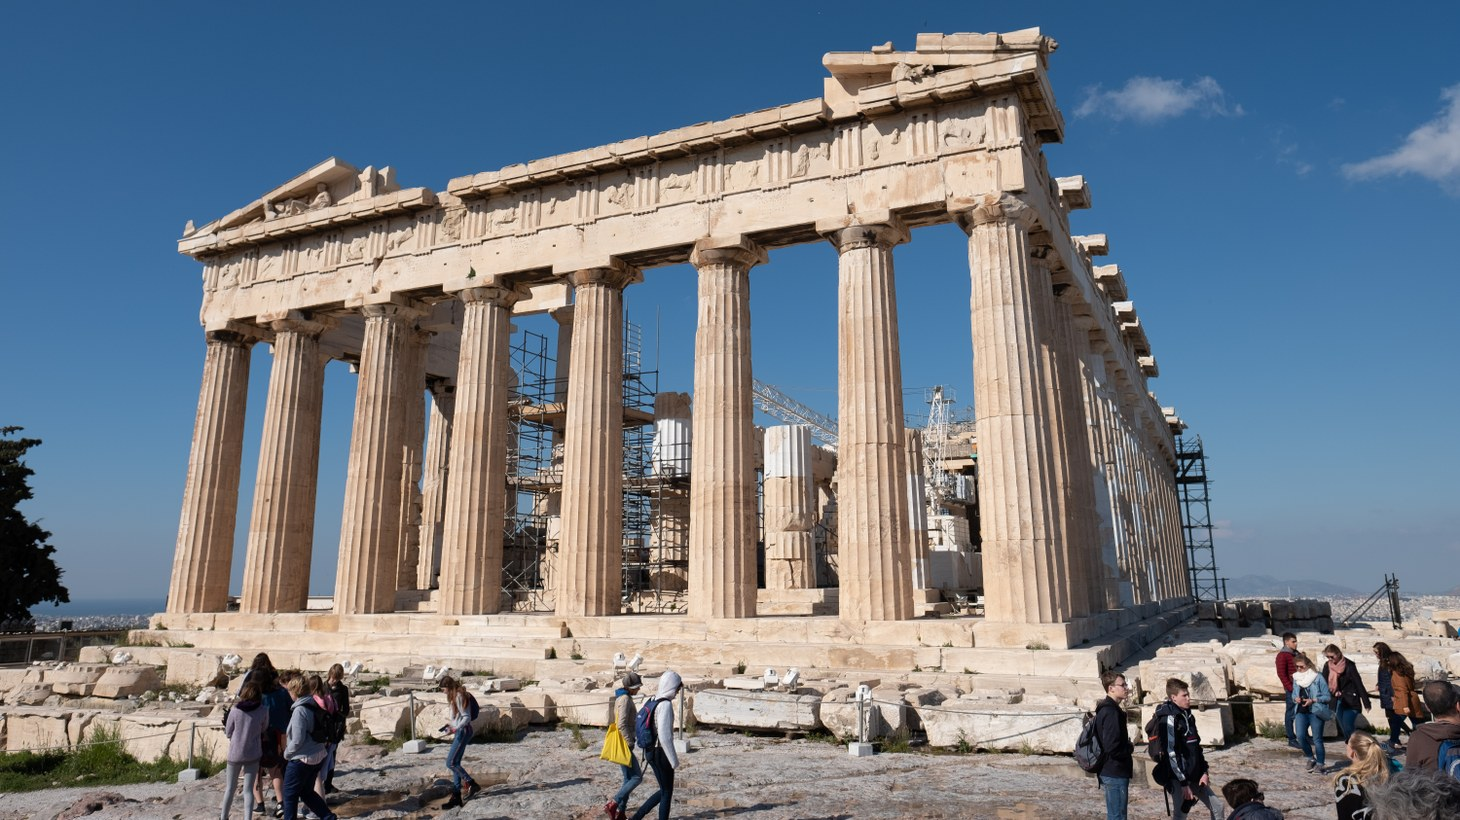 Tourists at the Parthenon in Athens, Greece, April 2019.